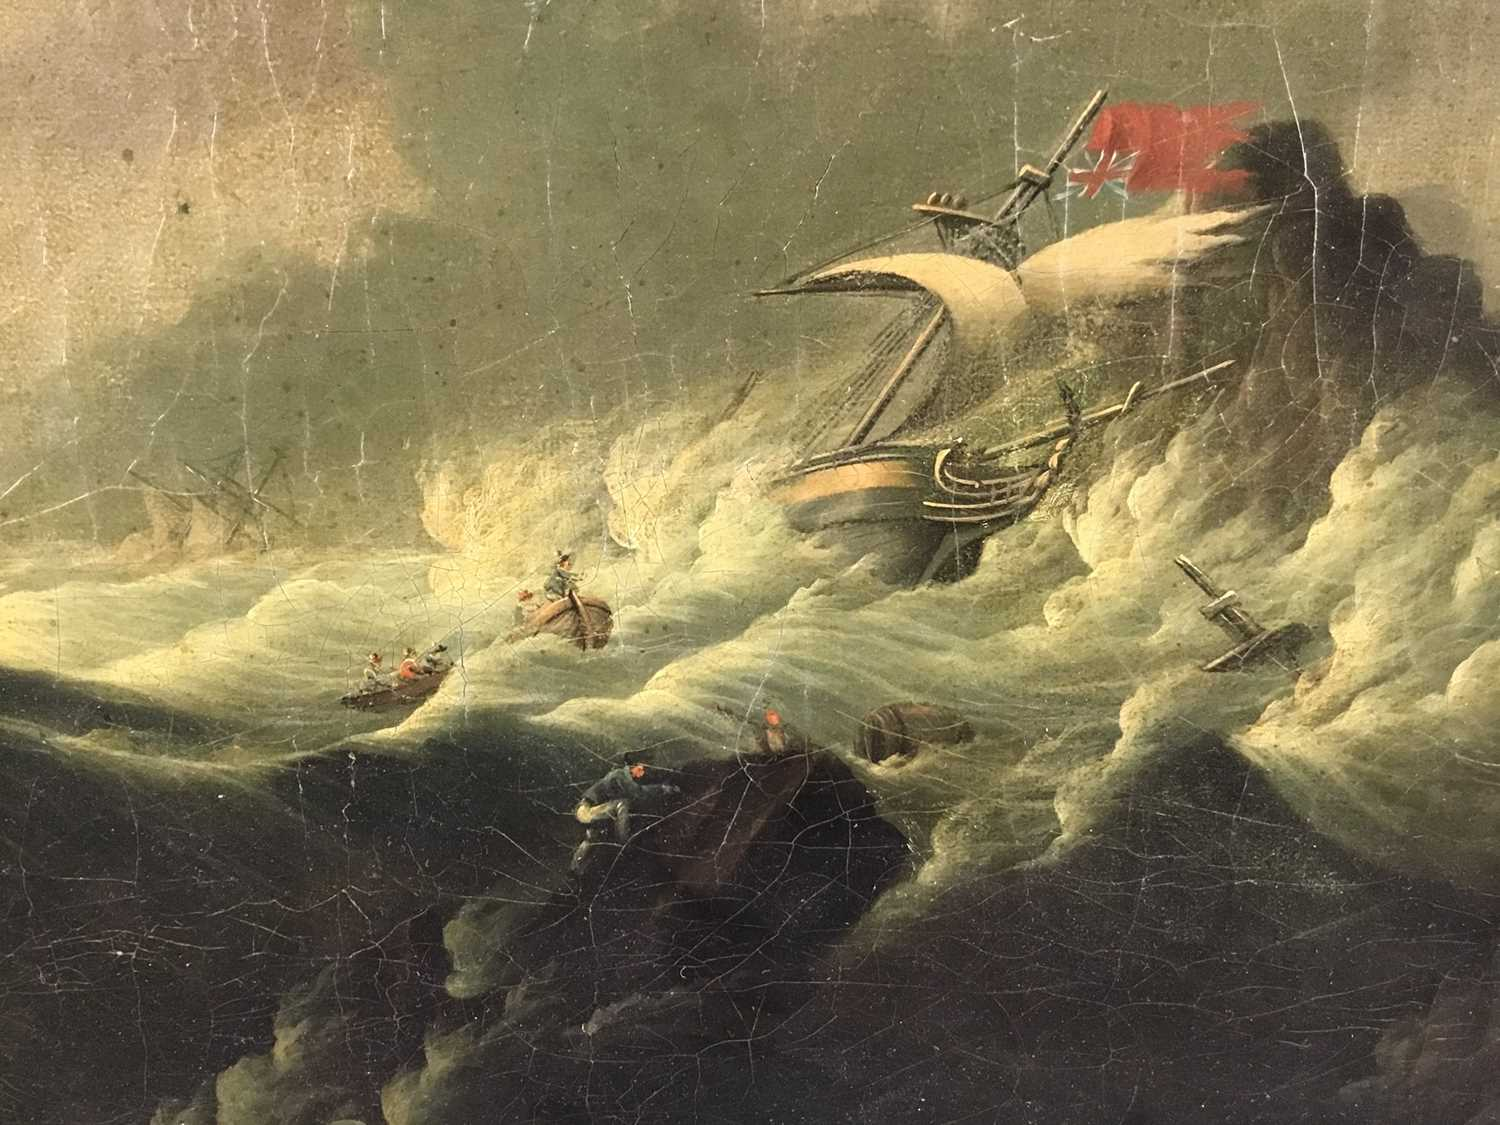 Attributed to Joseph Vernet (1714-1789) oil on canvas - shipping crashing against the rocks, 55cm x - Image 10 of 12